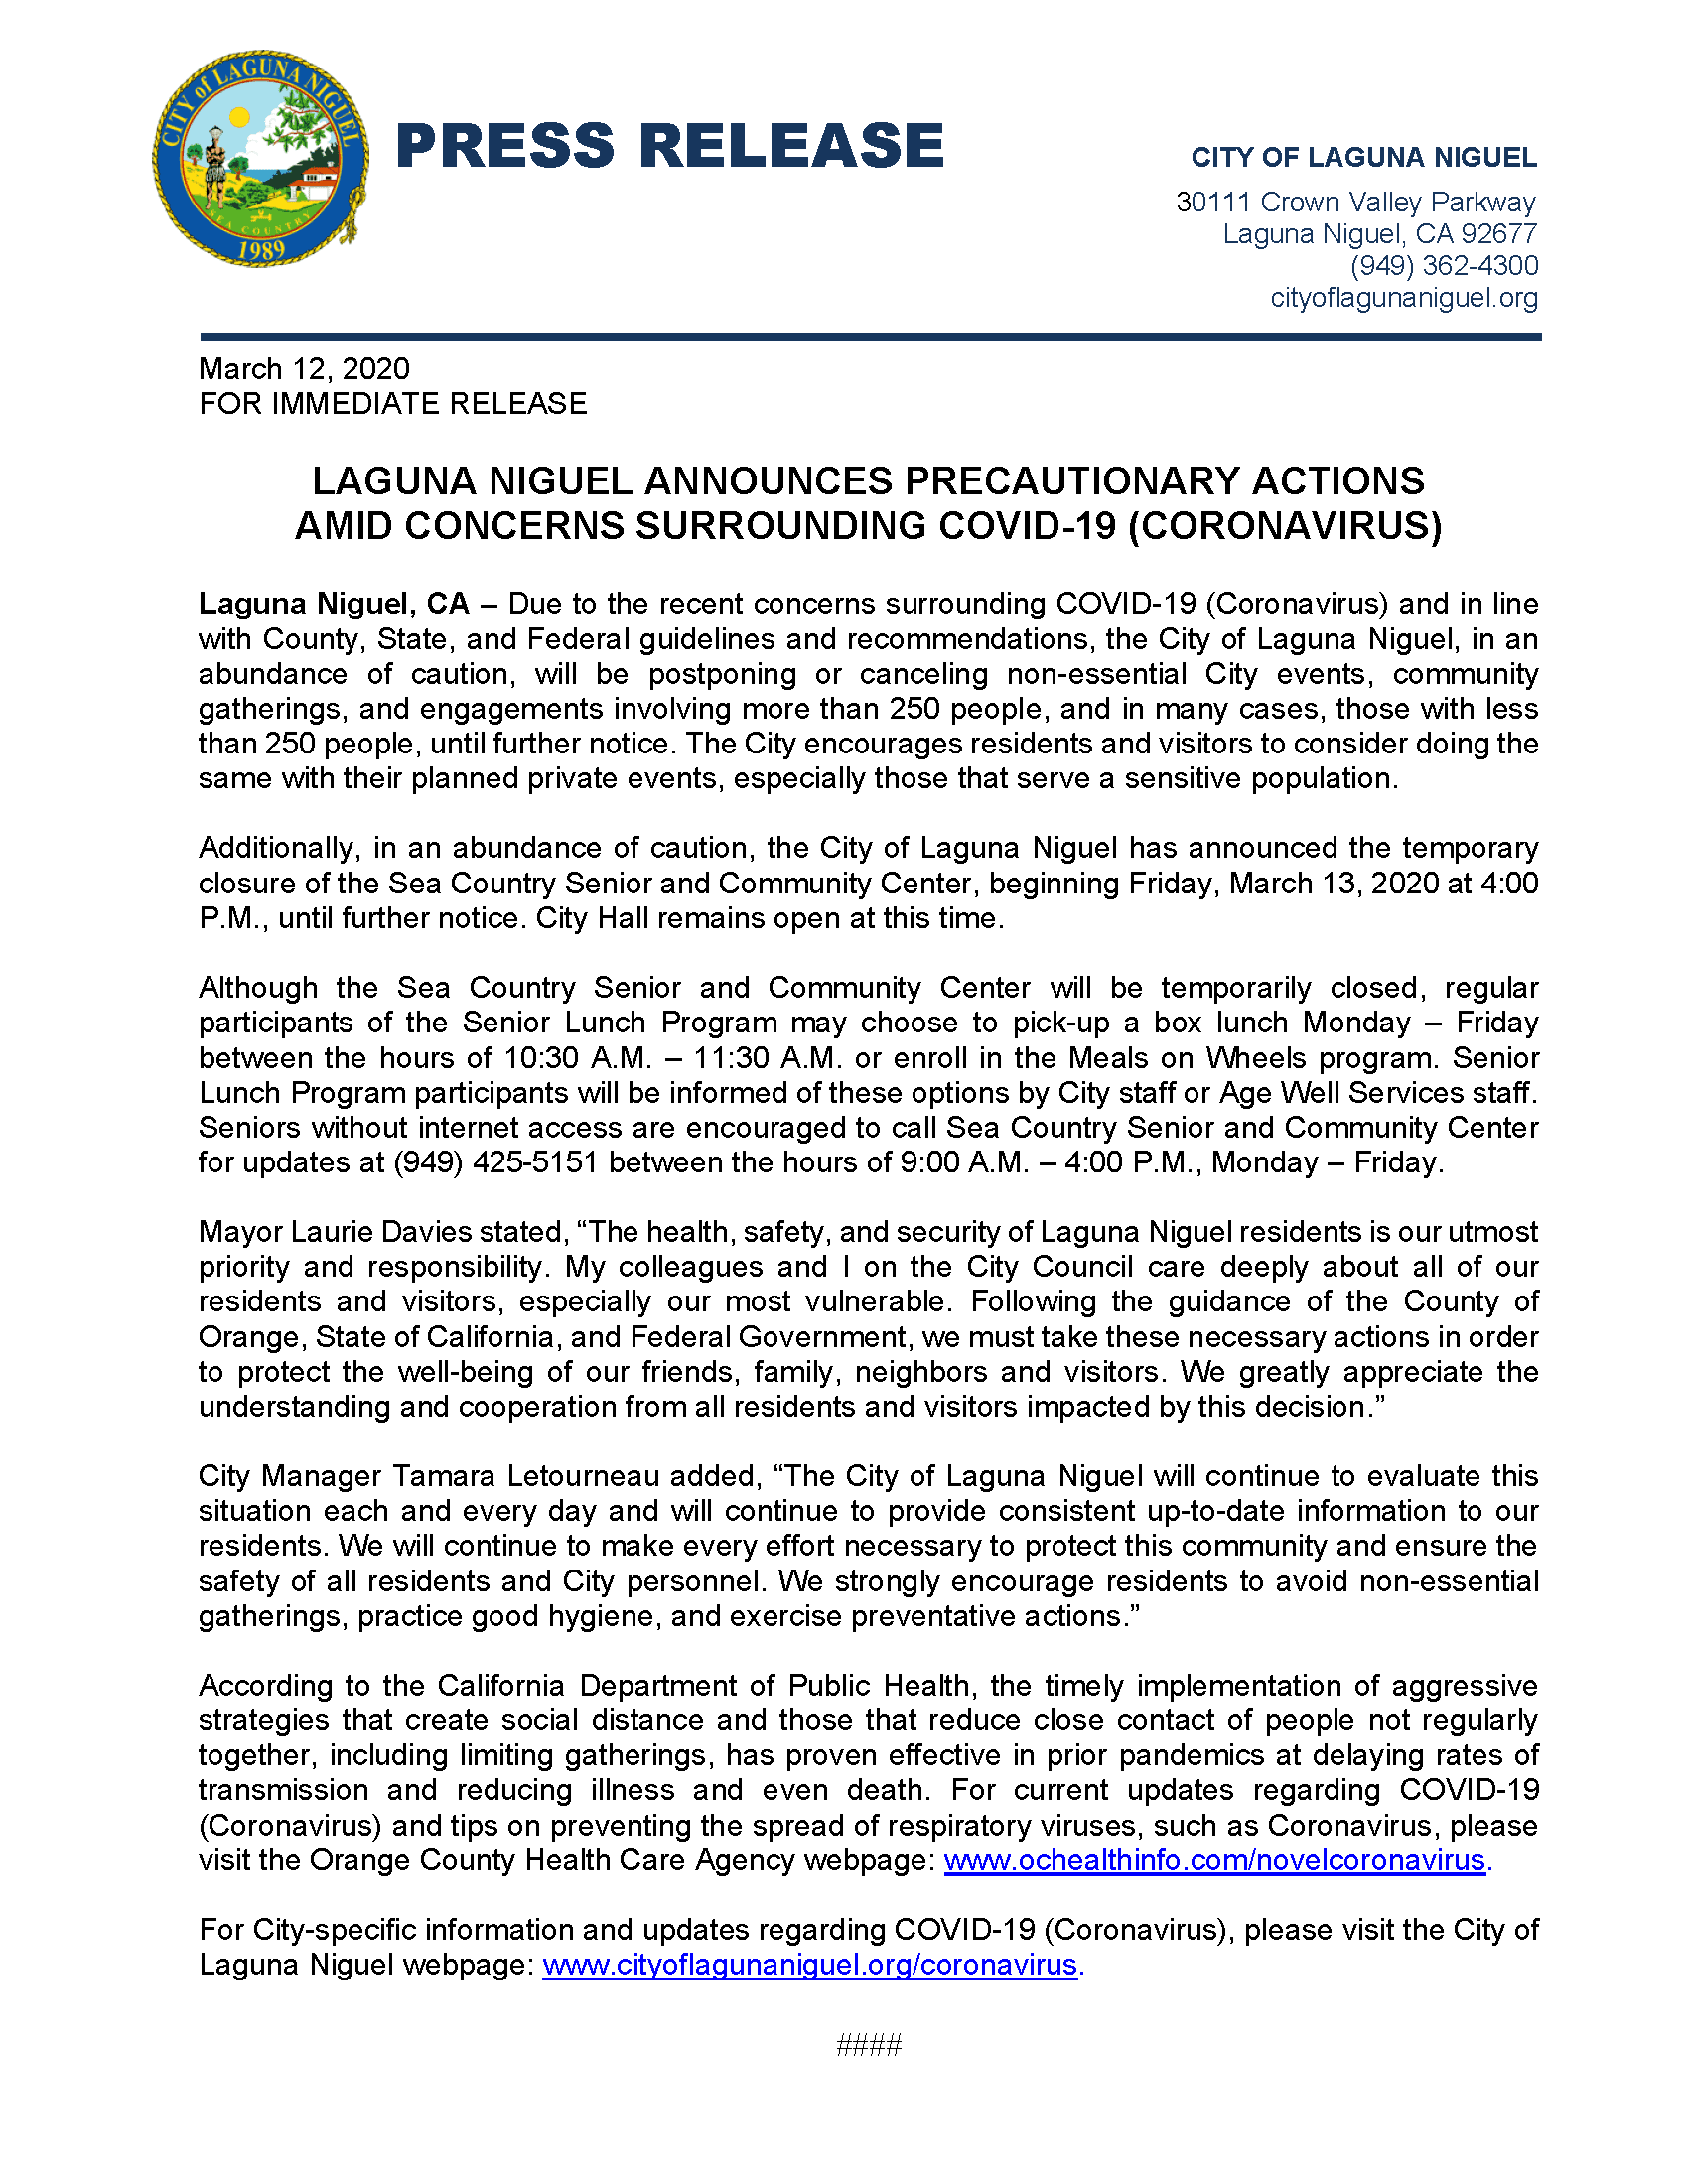 City of Laguna Niguel COVID 19 Press Release